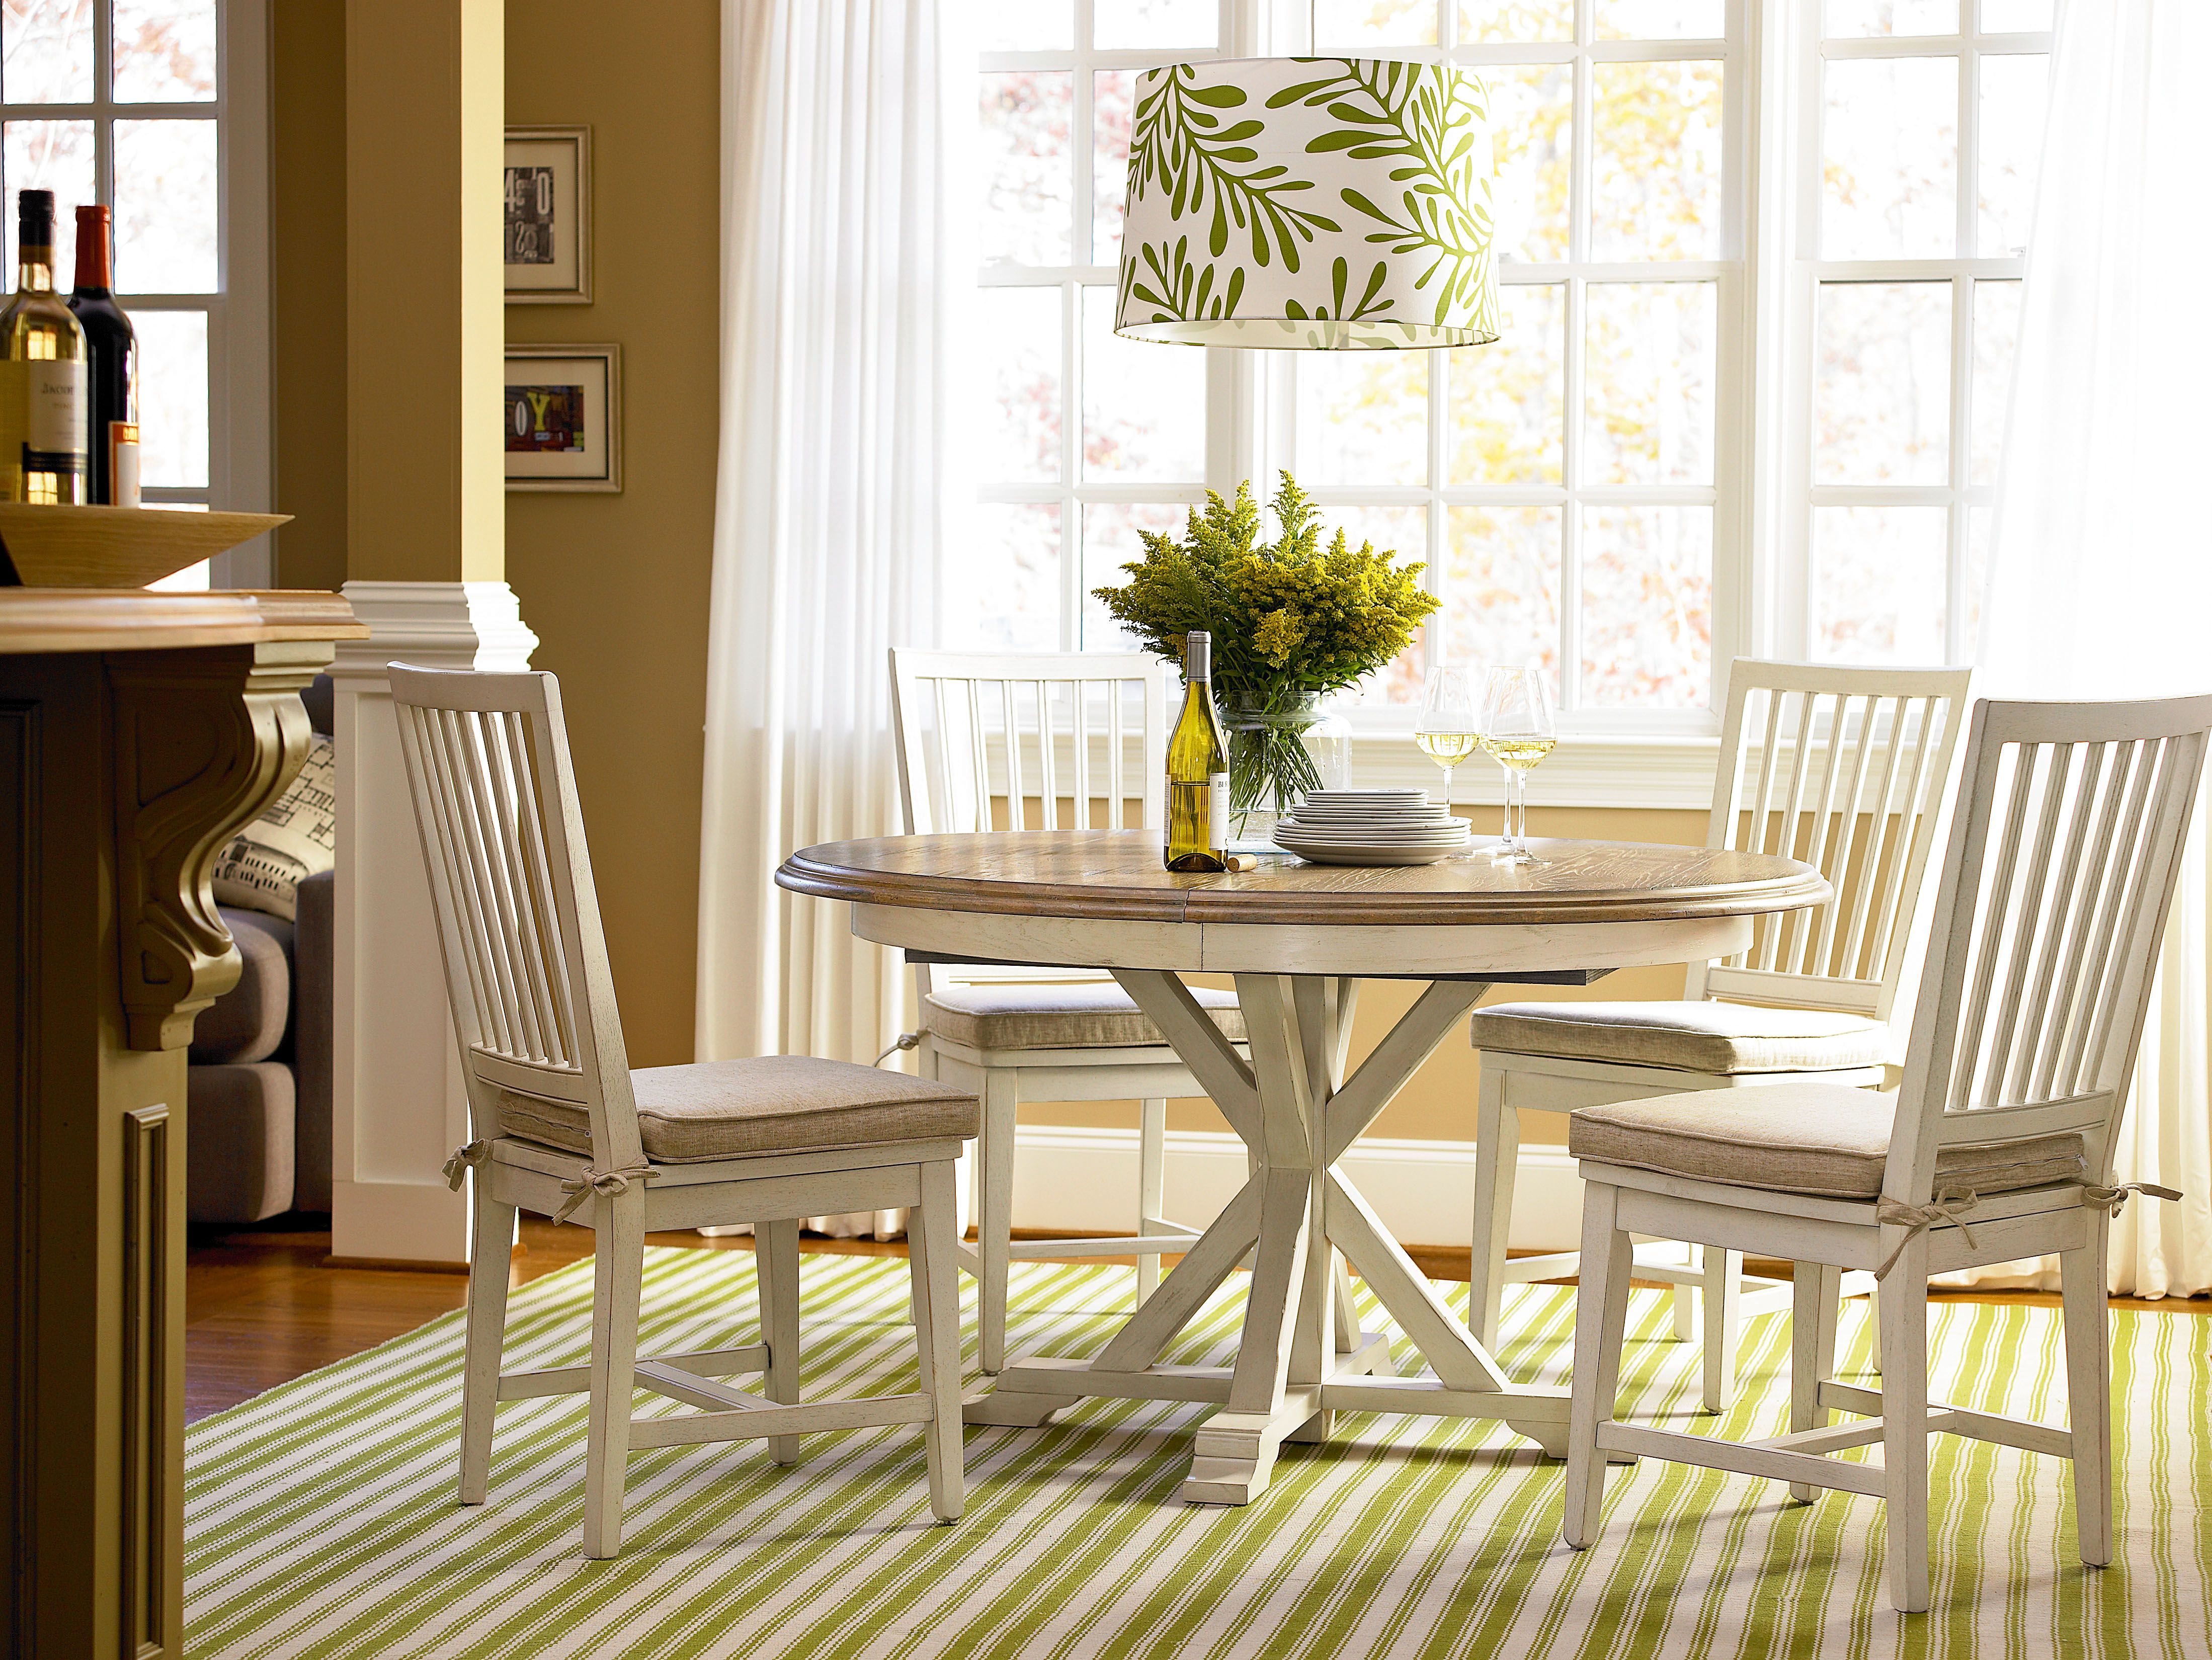 Great Rooms Collection Garden Breakfast Table With Side Chair Magnificent Comfortable Dining Room Sets Decorating Inspiration